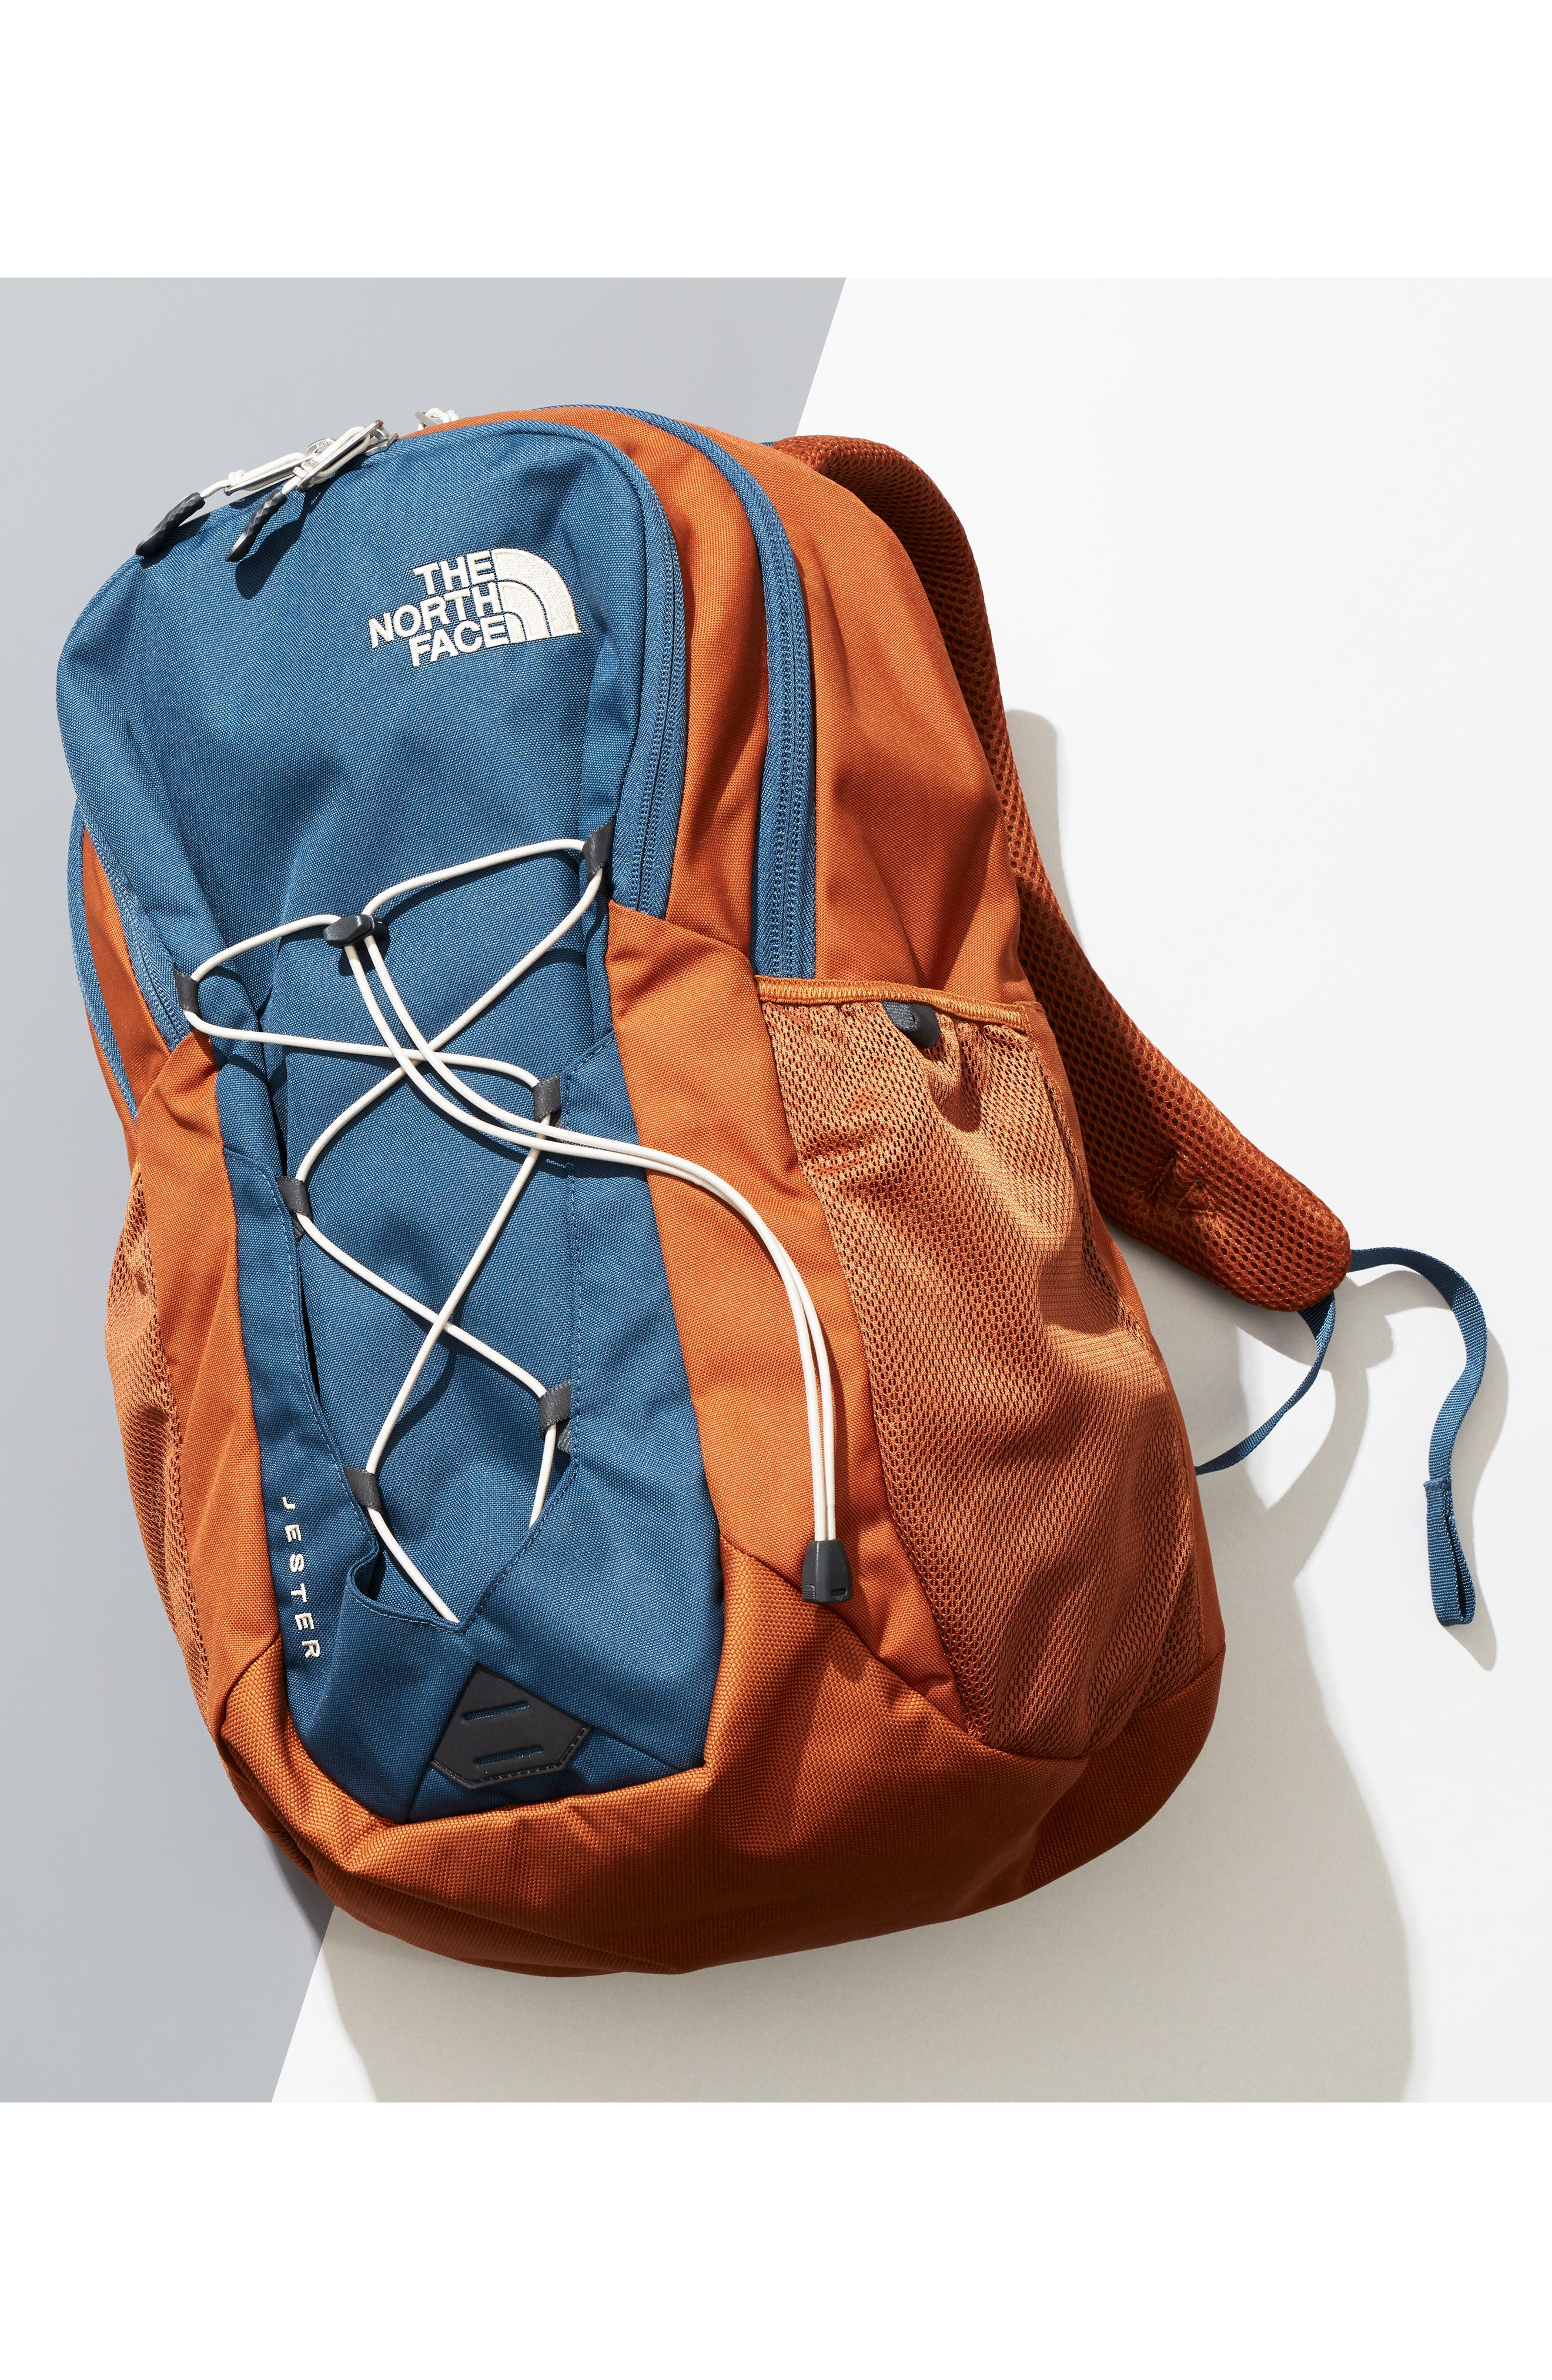 THE NORTH FACE Jester Backpack, Main, color, 100